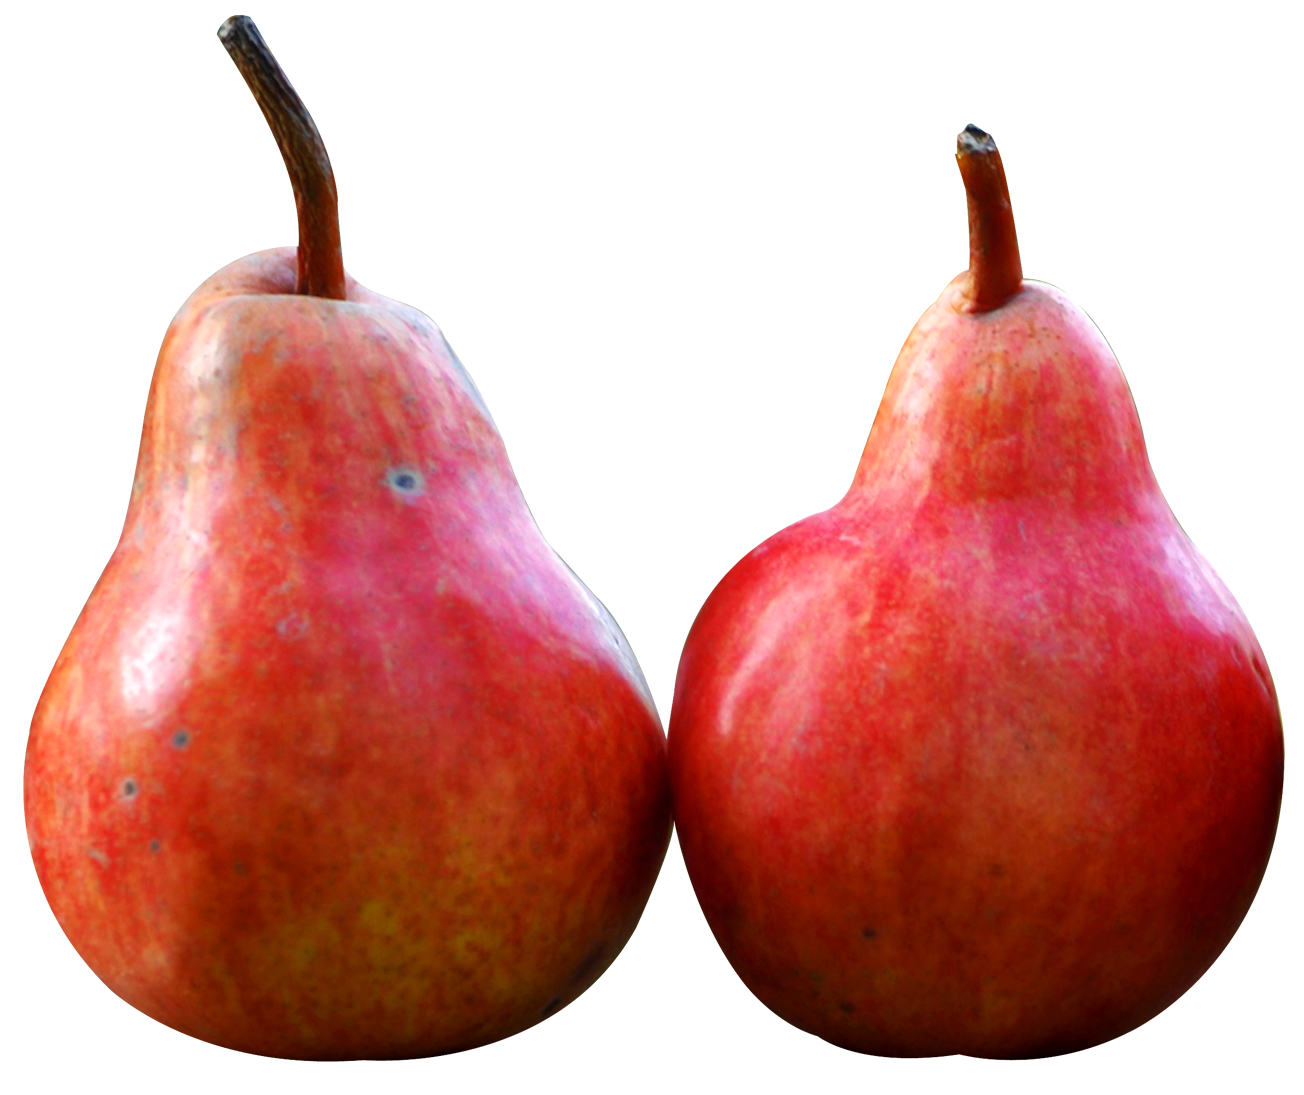 Two fruits png image. Pear clipart pear slice